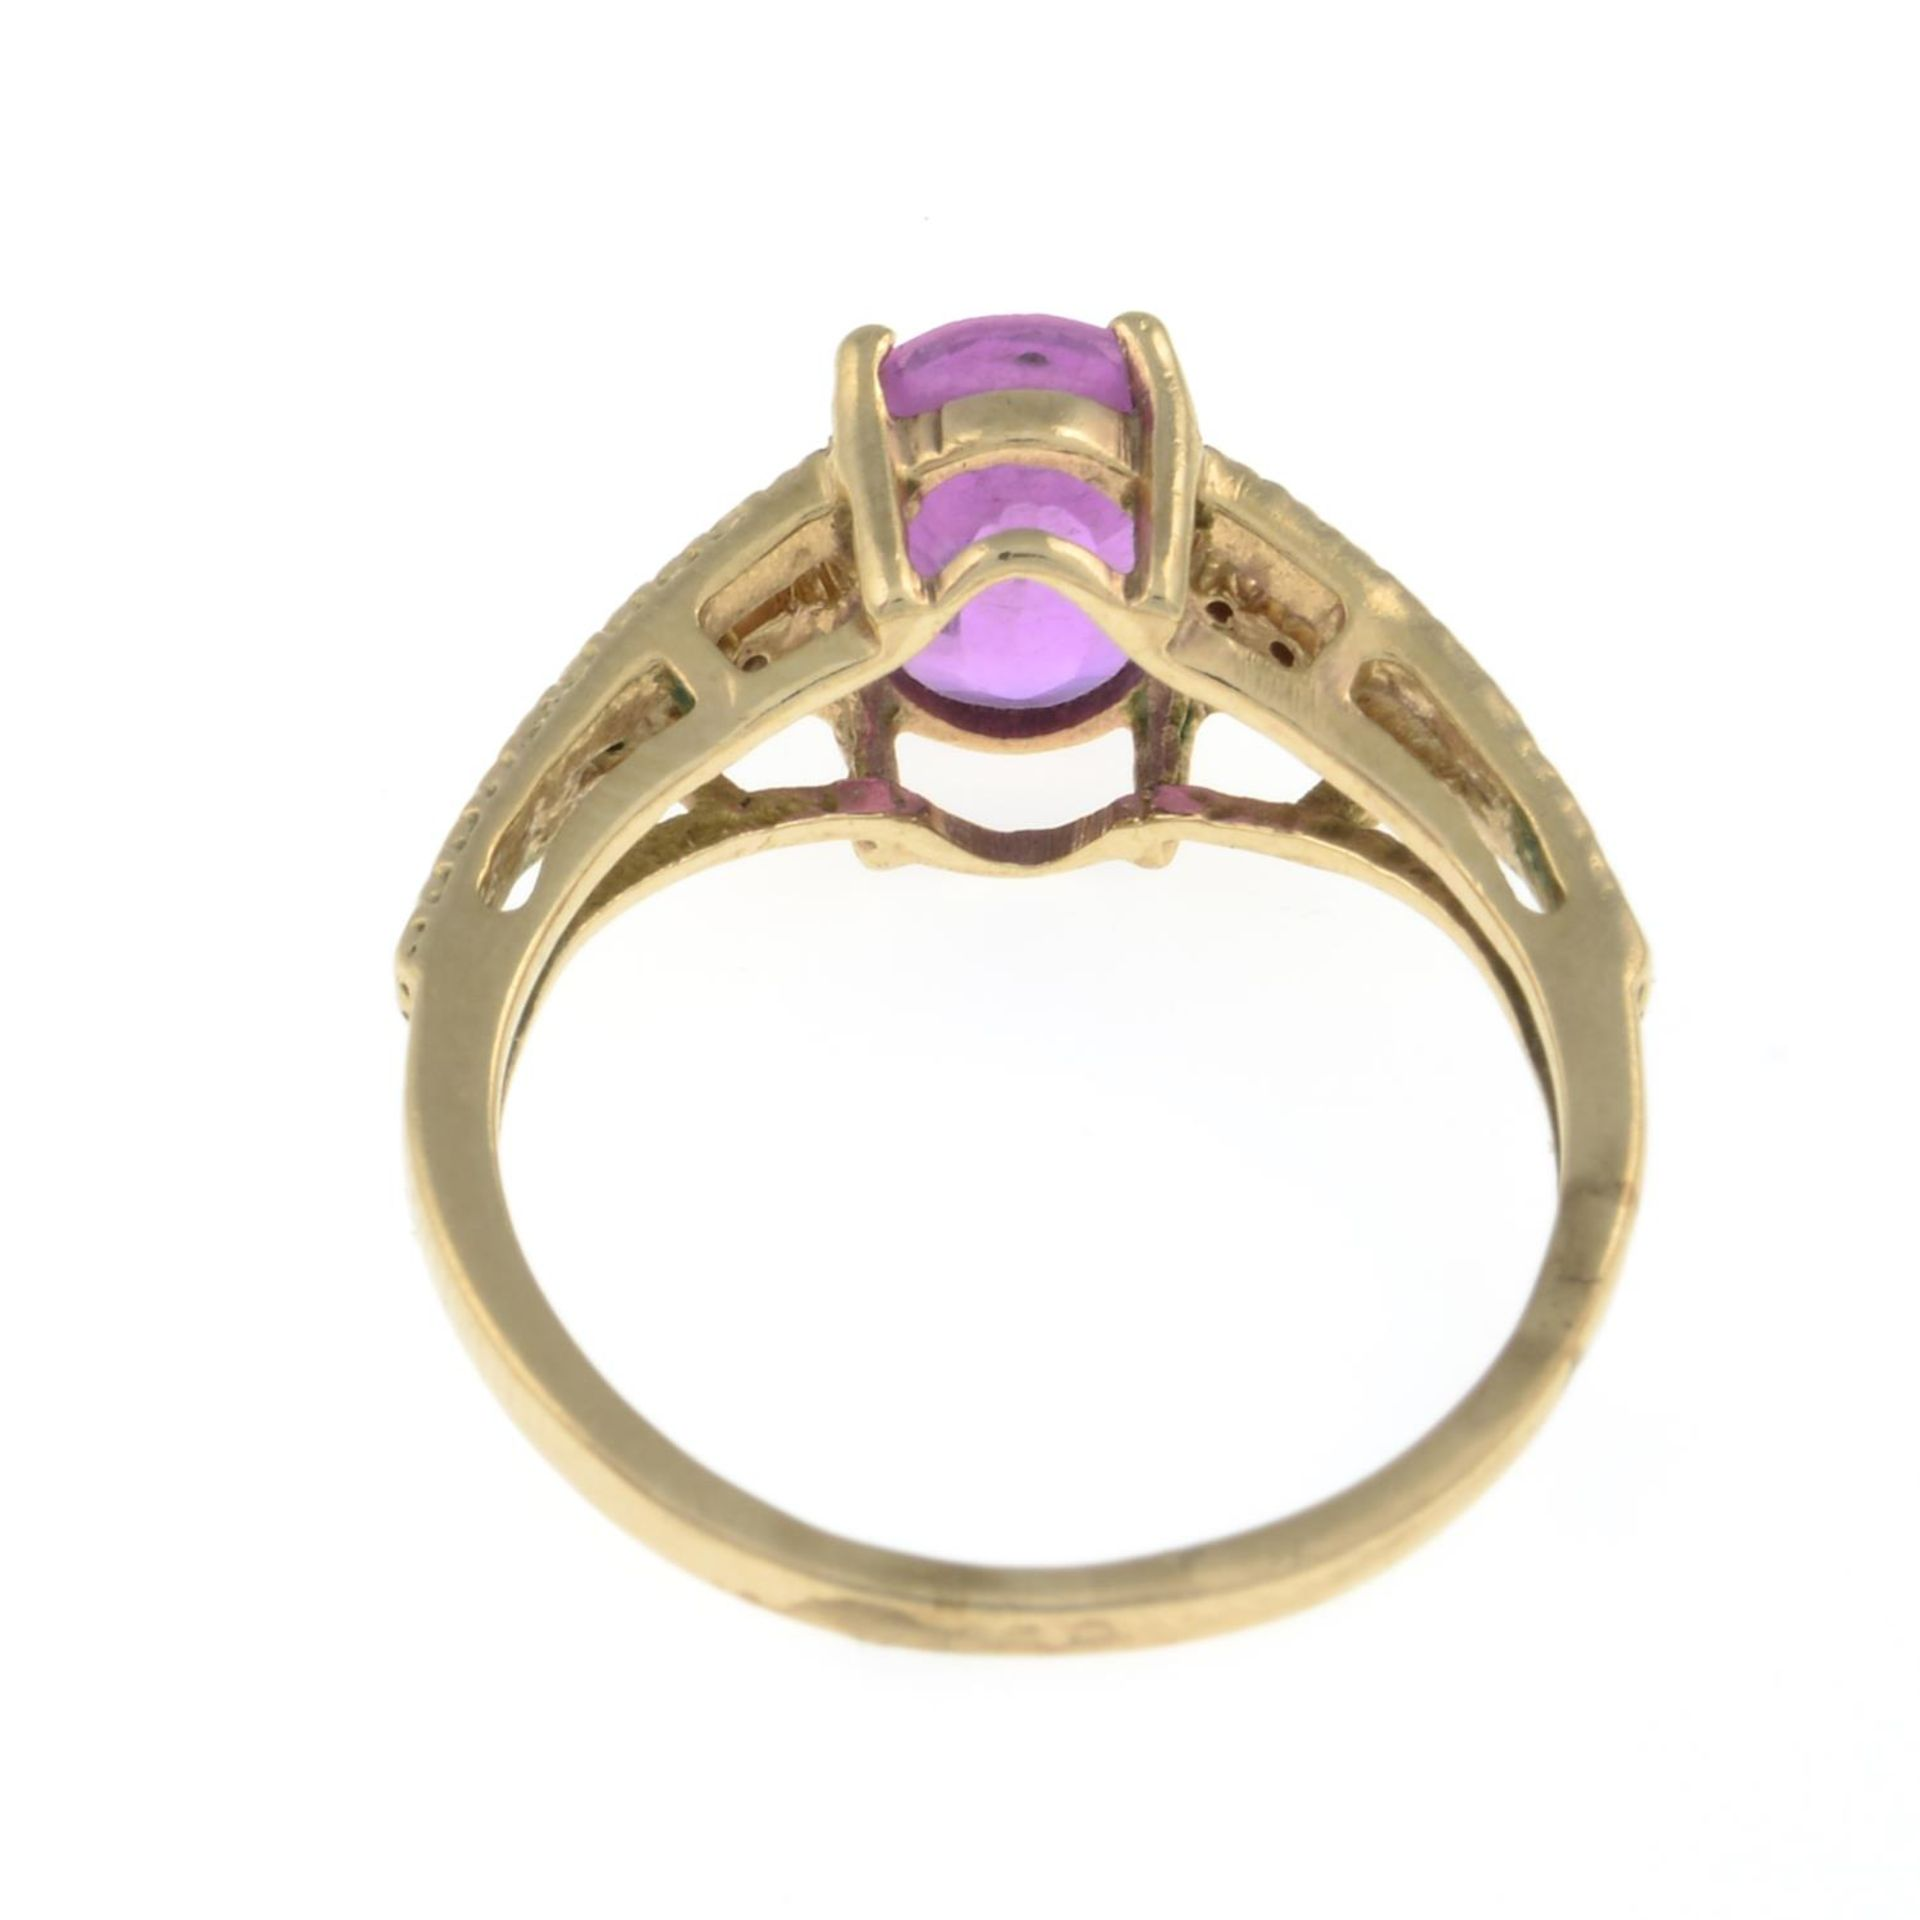 A 9ct gold pink sapphire and diamond ring.Hallmarks for Birmingham.Ring size I. - Image 3 of 3